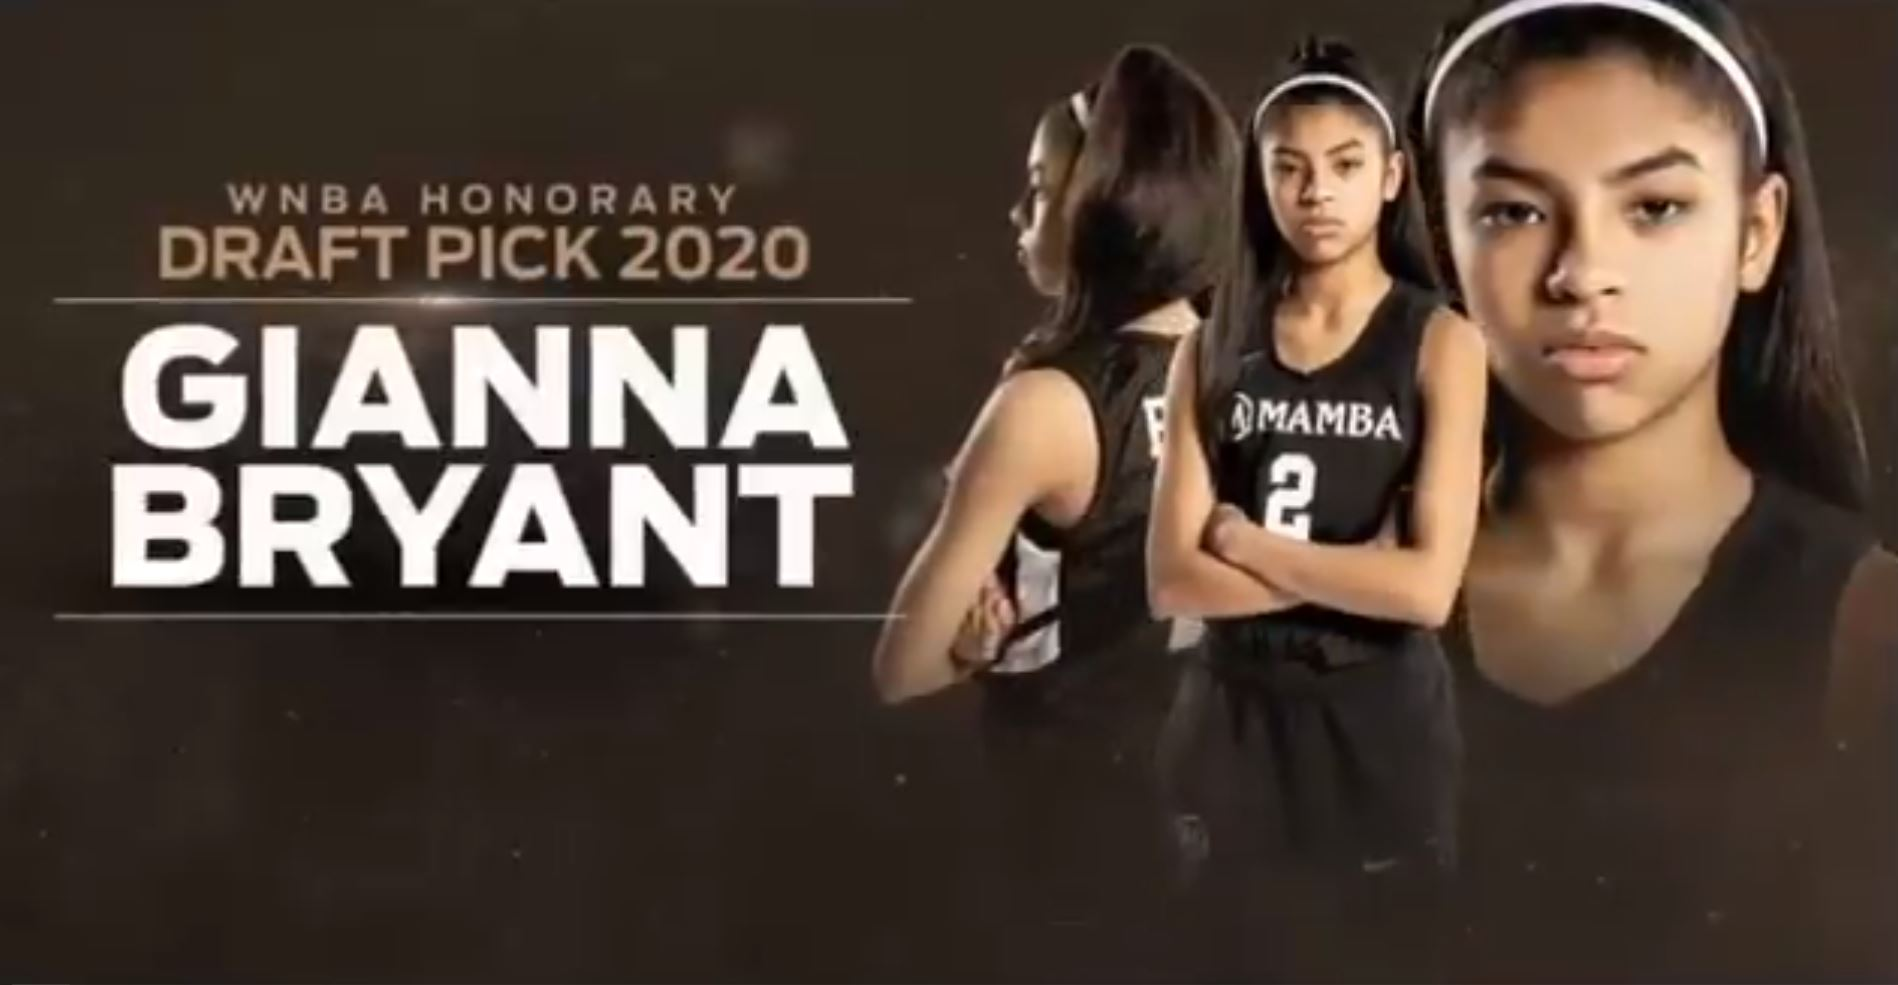 Kobe Bryant's daughter, Gianna, was honorary pick in Friday night's WNBA Draft